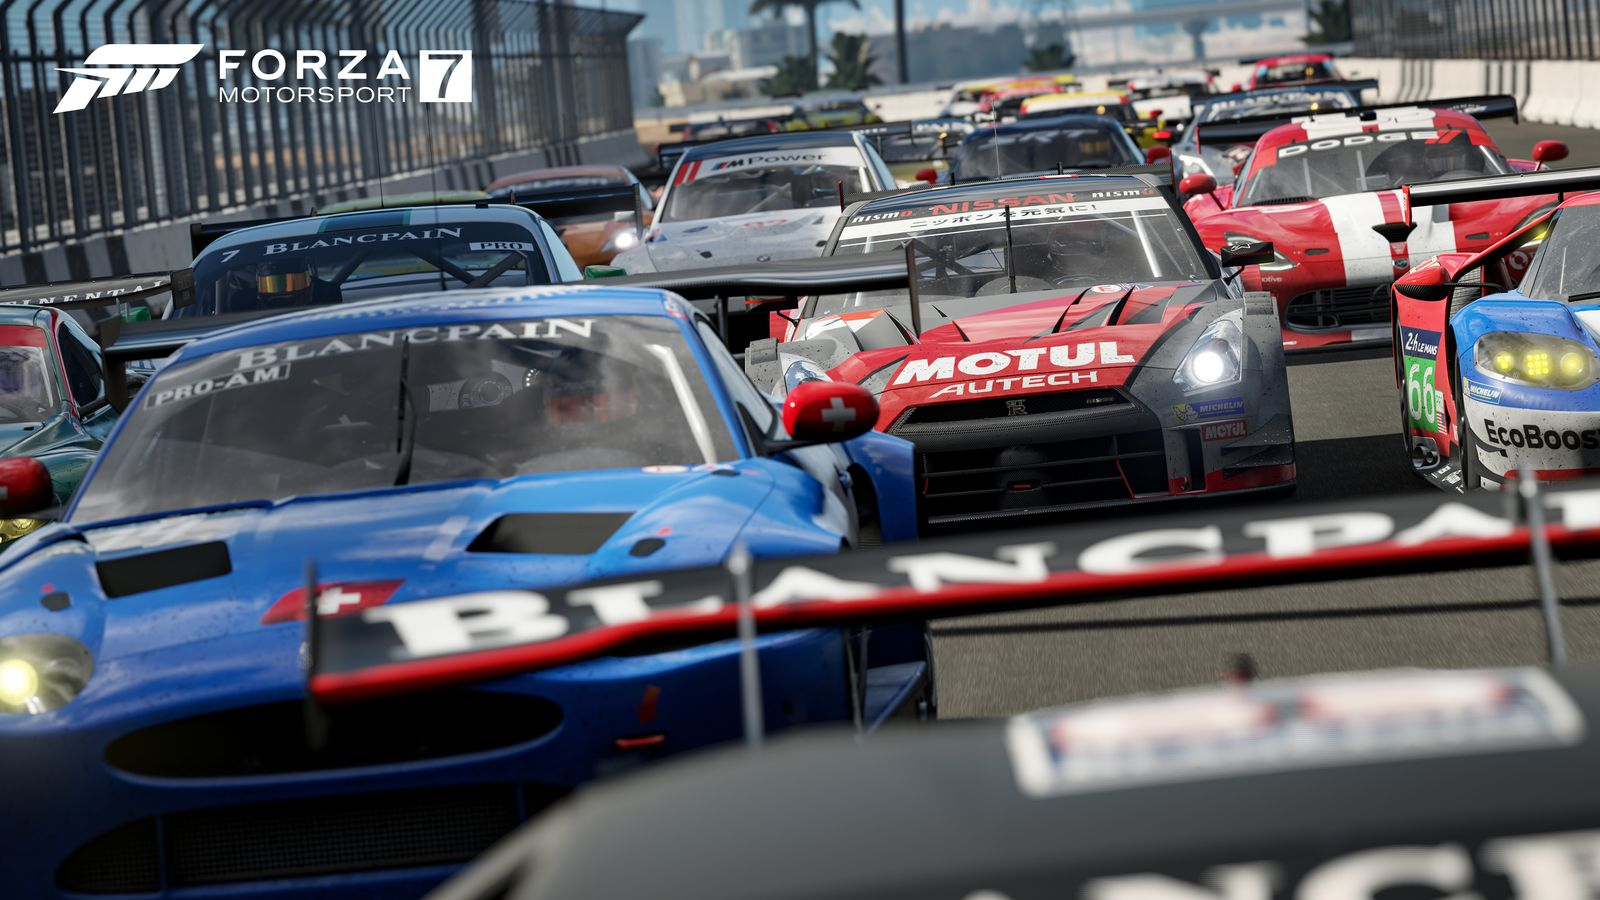 Forza Motorsport 7 First Look: The Series Refocuses on its Drivers